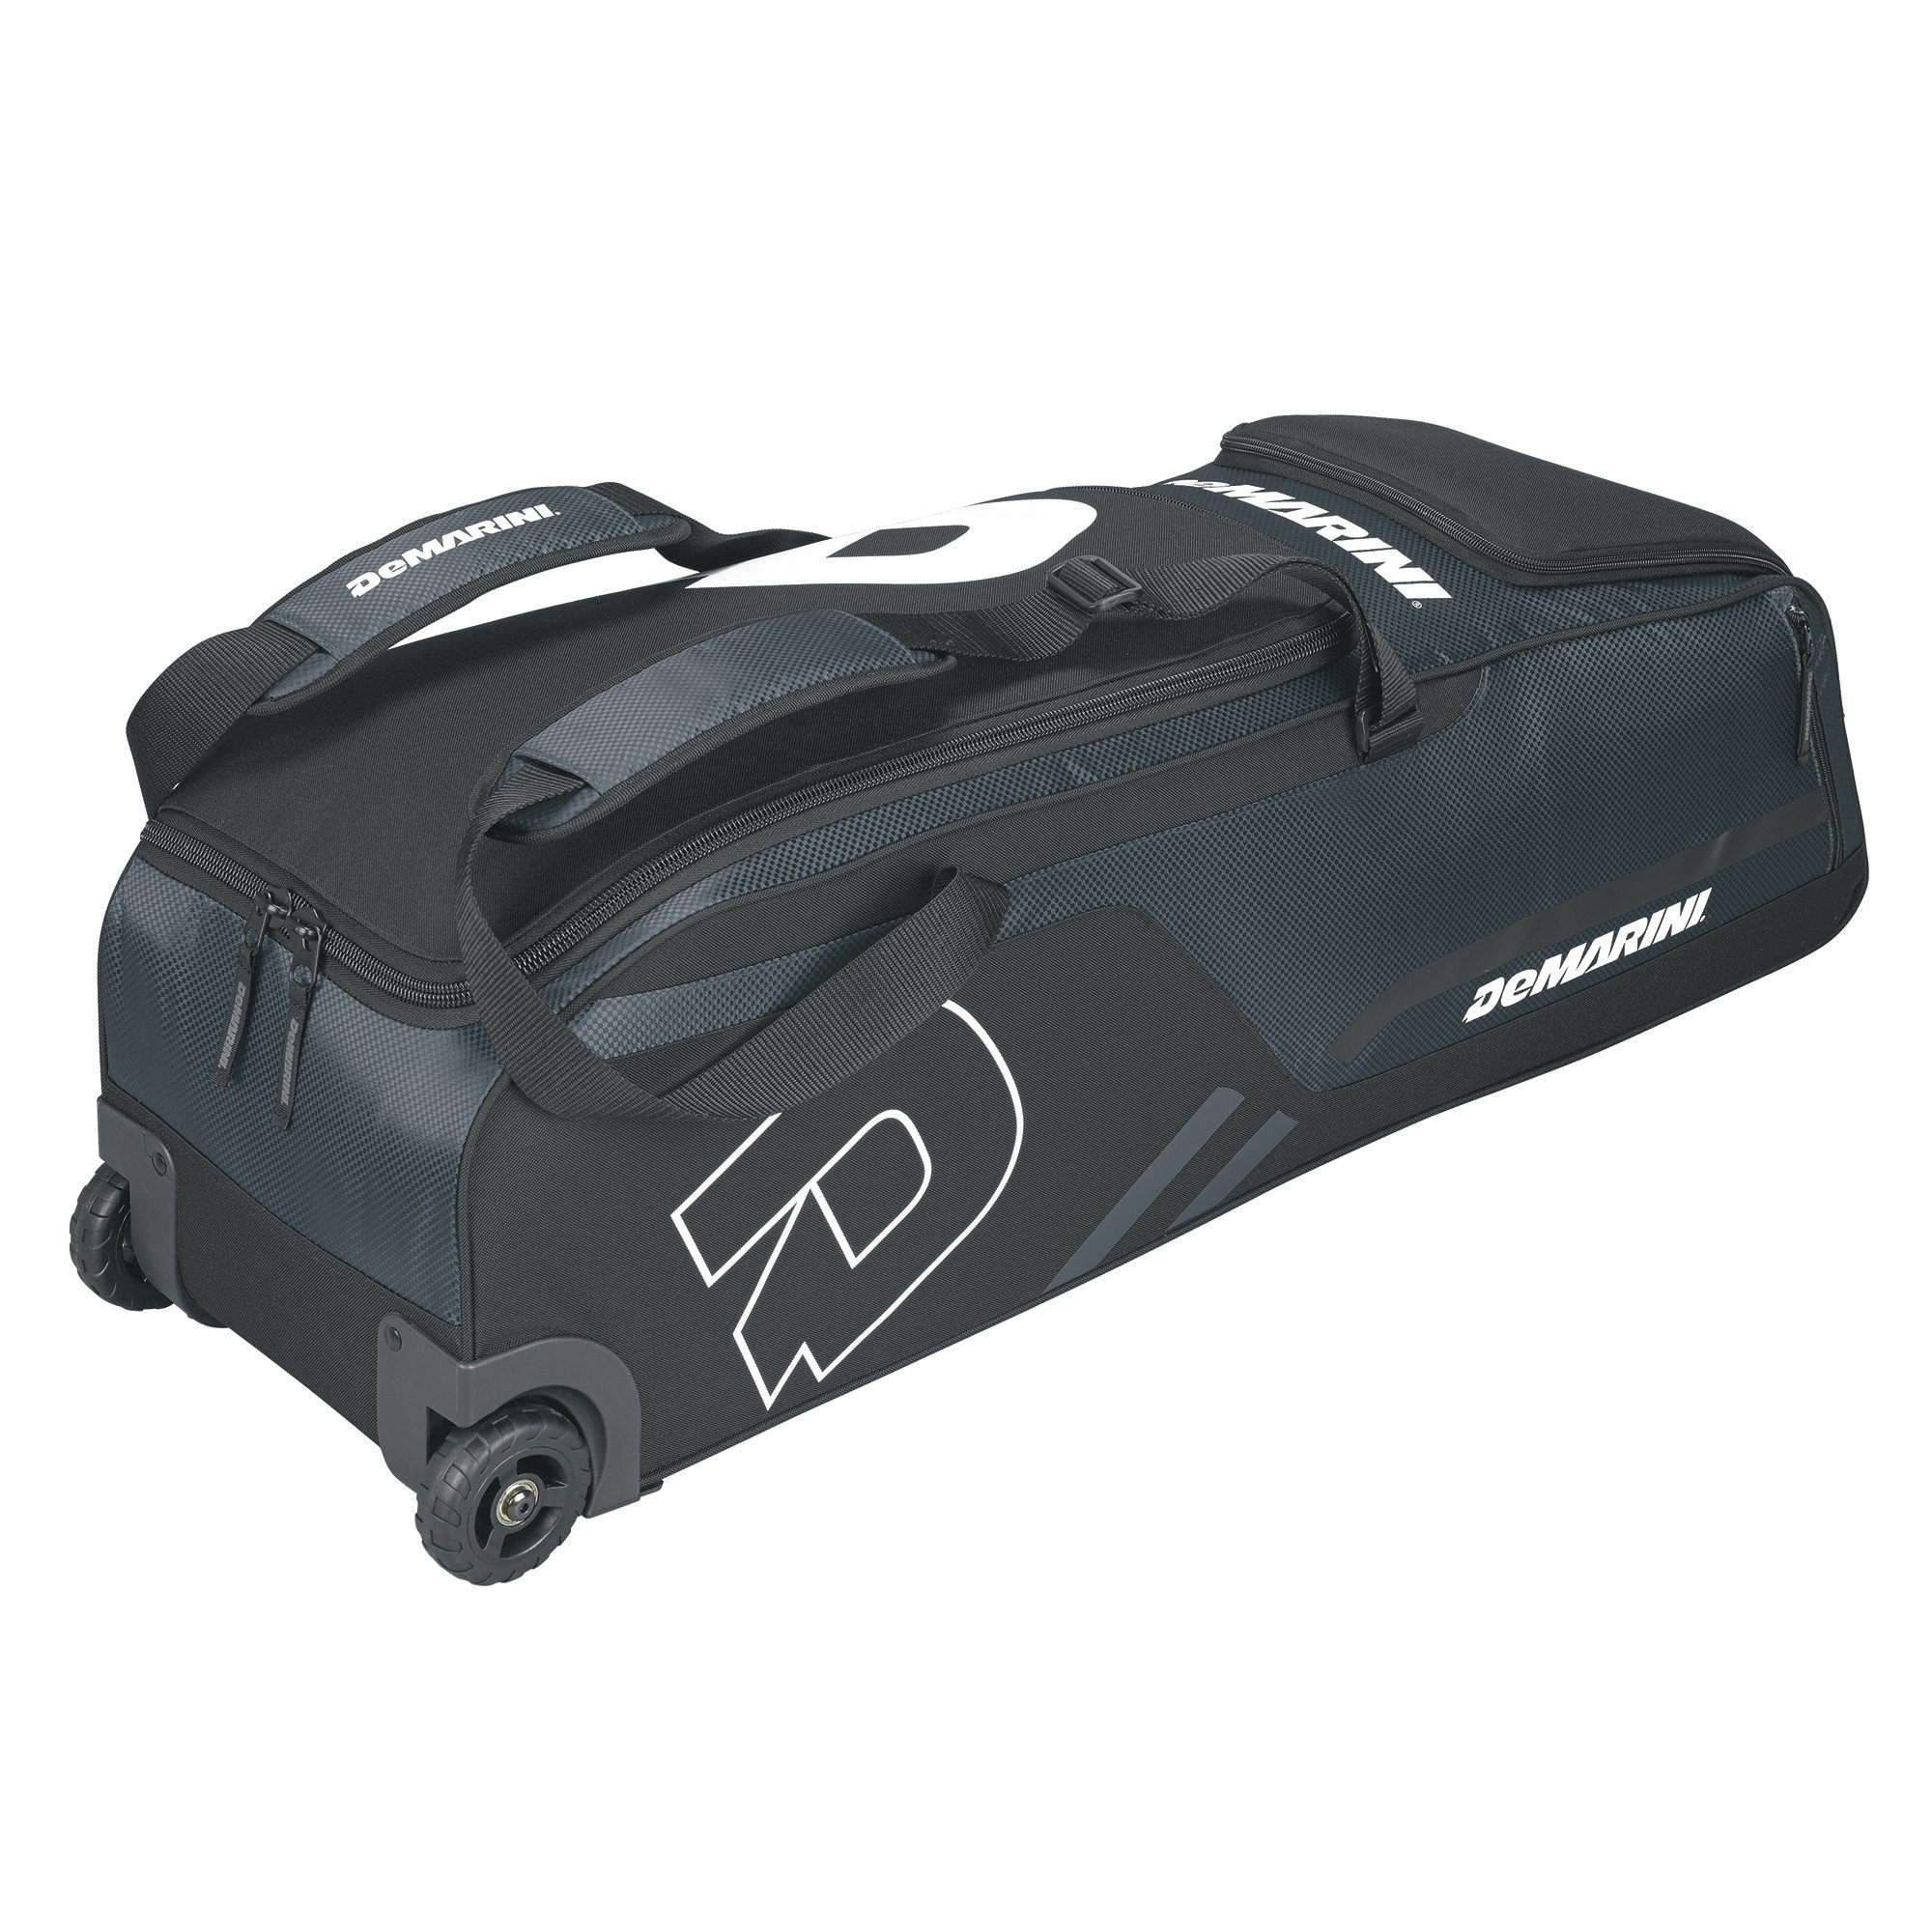 DeMarini Momentum Wheeled Bag, Charcoal by DeMarini